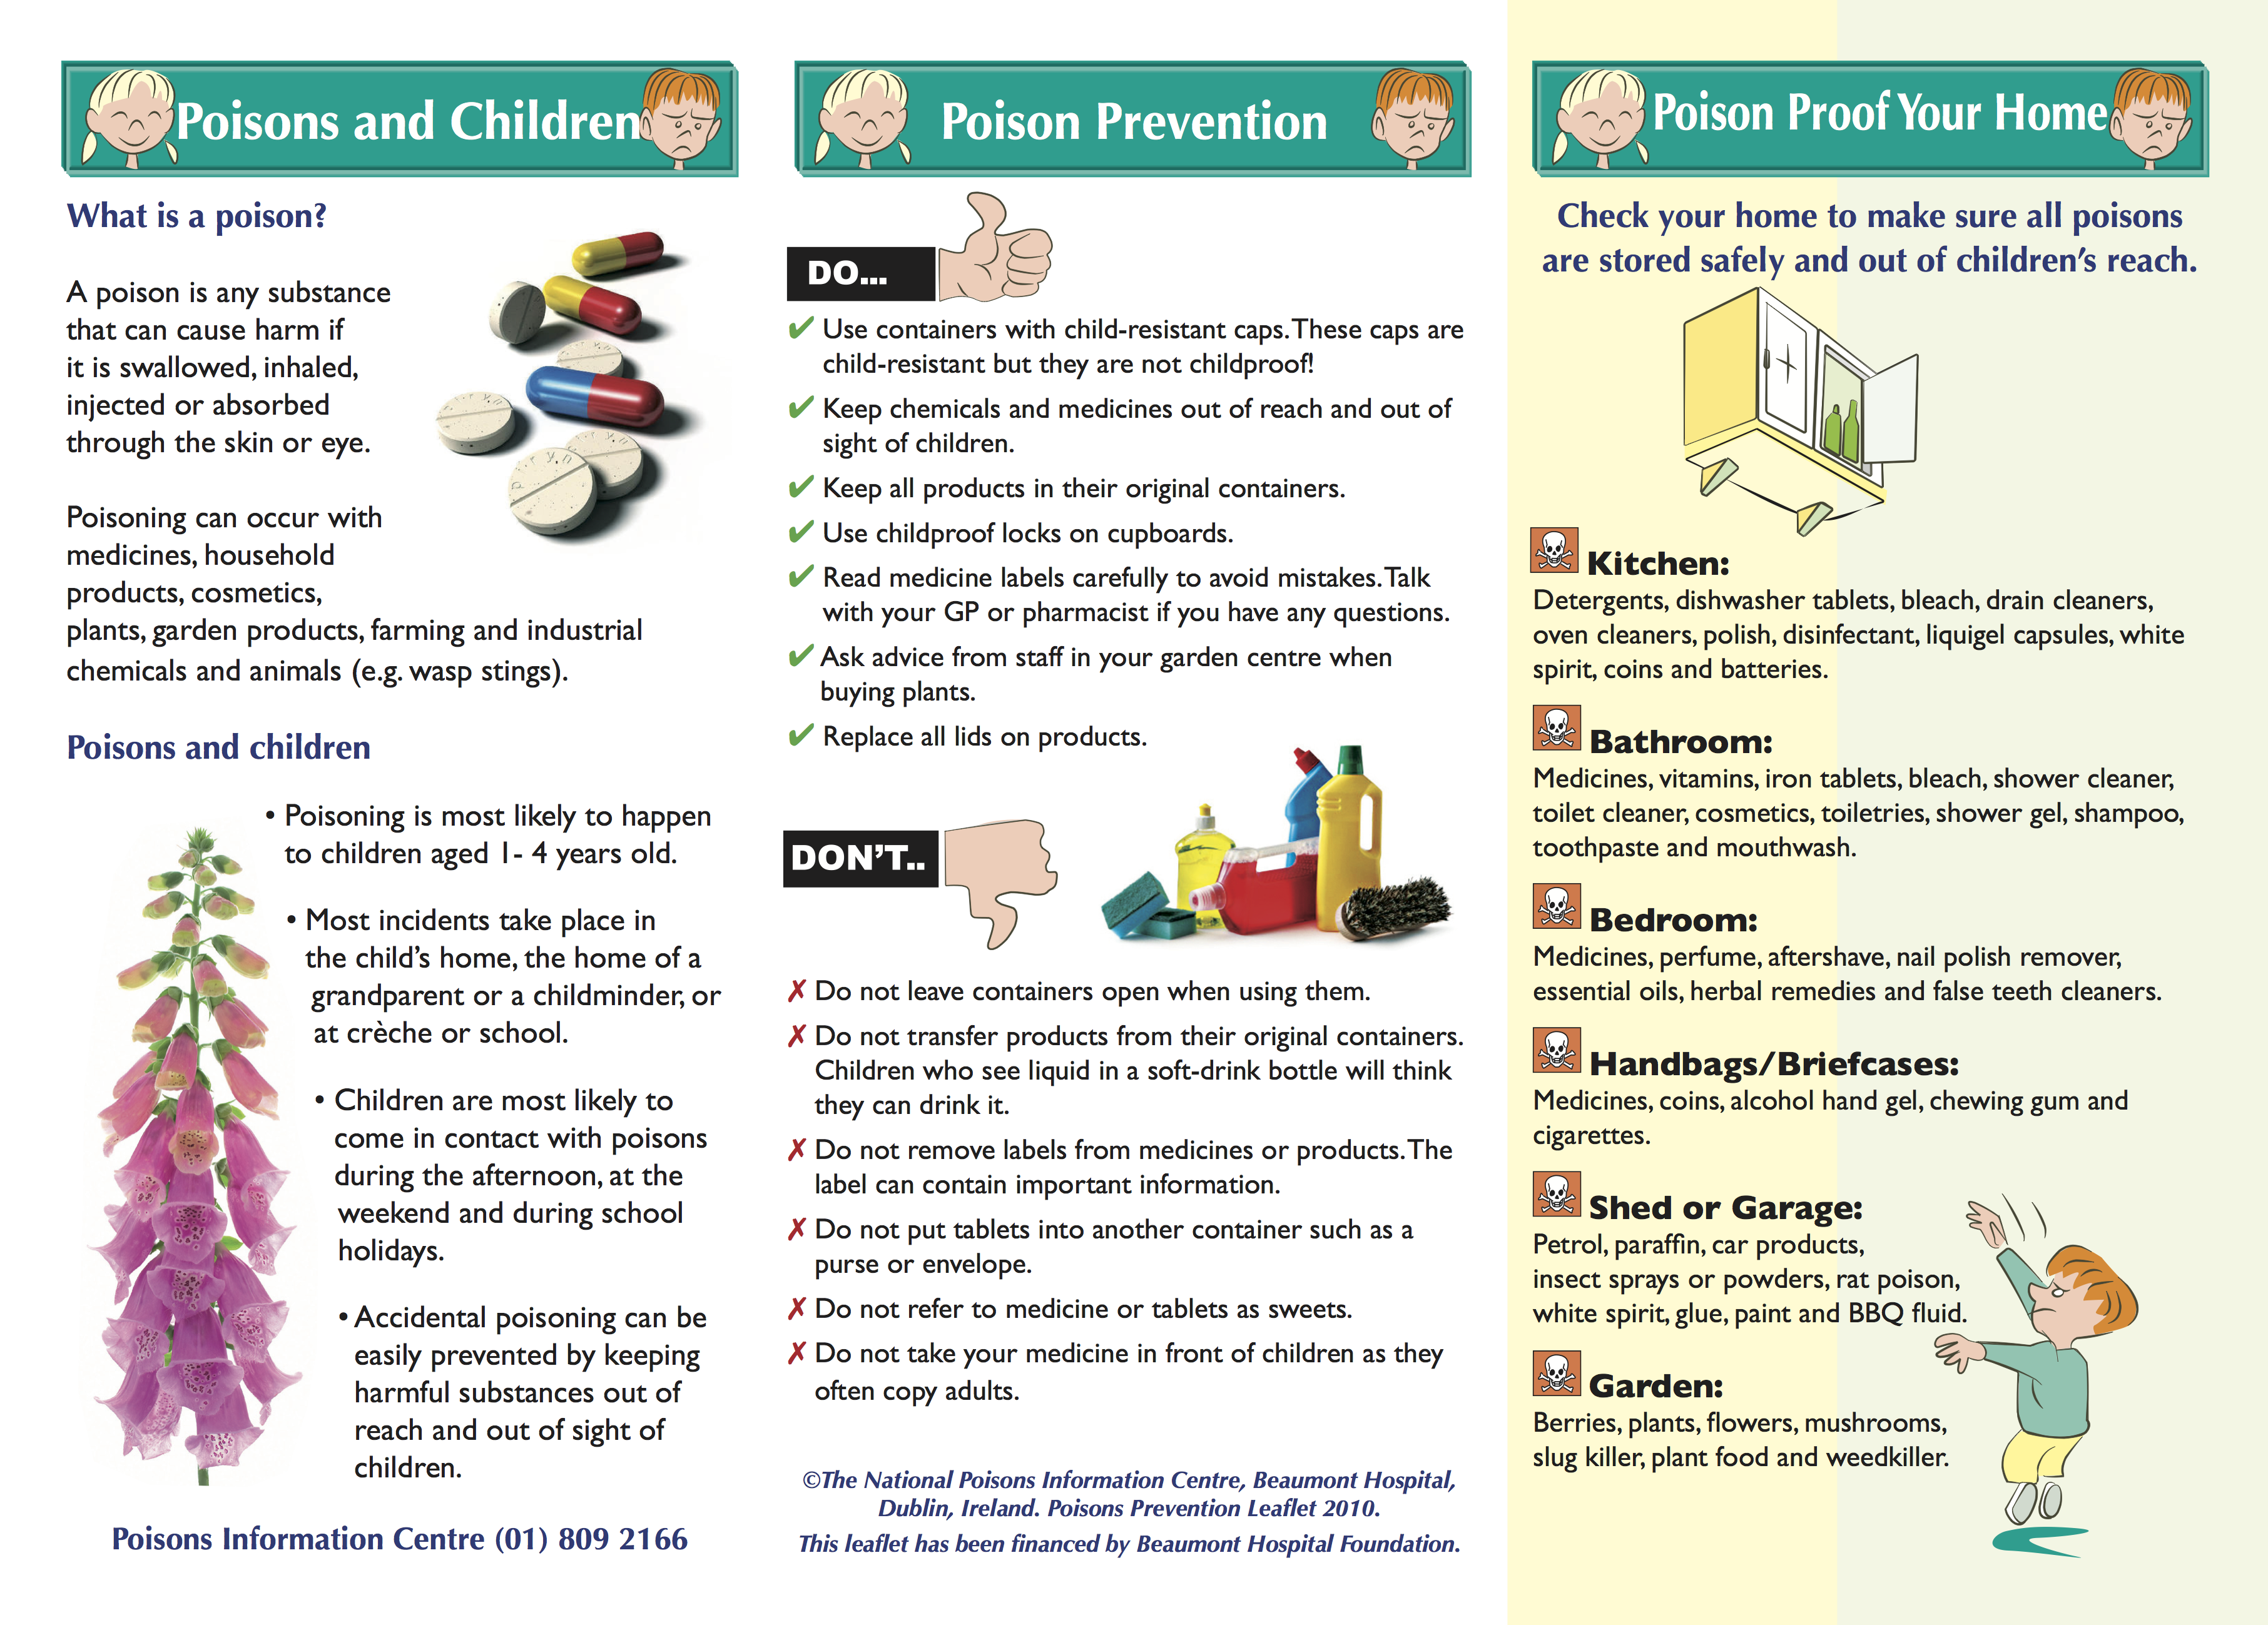 Poison Prevention pictures